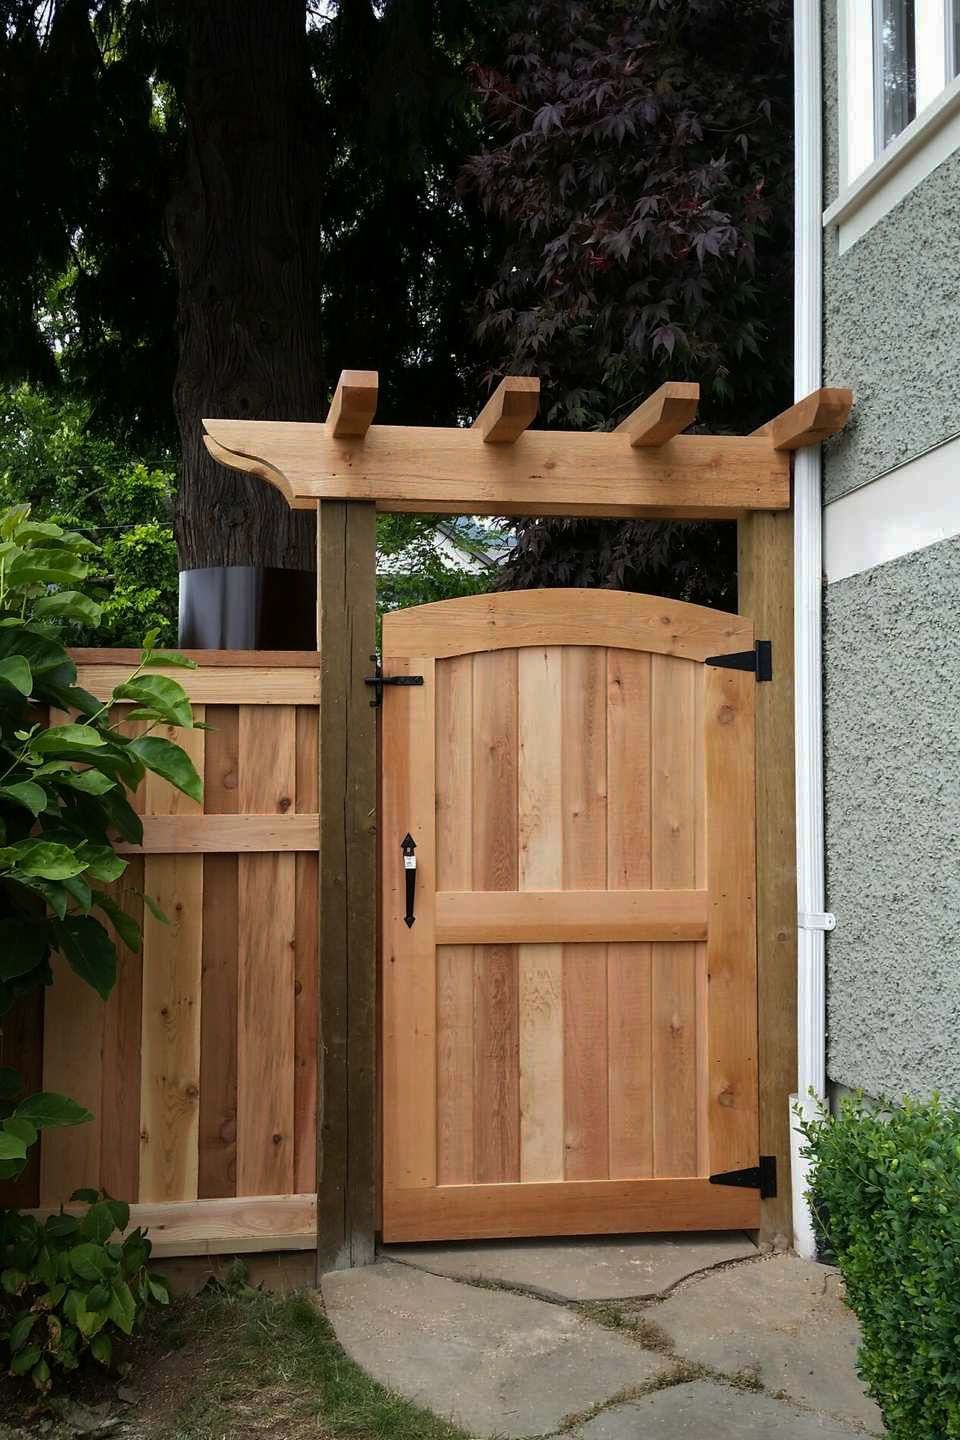 Modern Fence Ideas For Your Backyard Privacy Fence Designs Backyard Gates Wooden Garden Gate